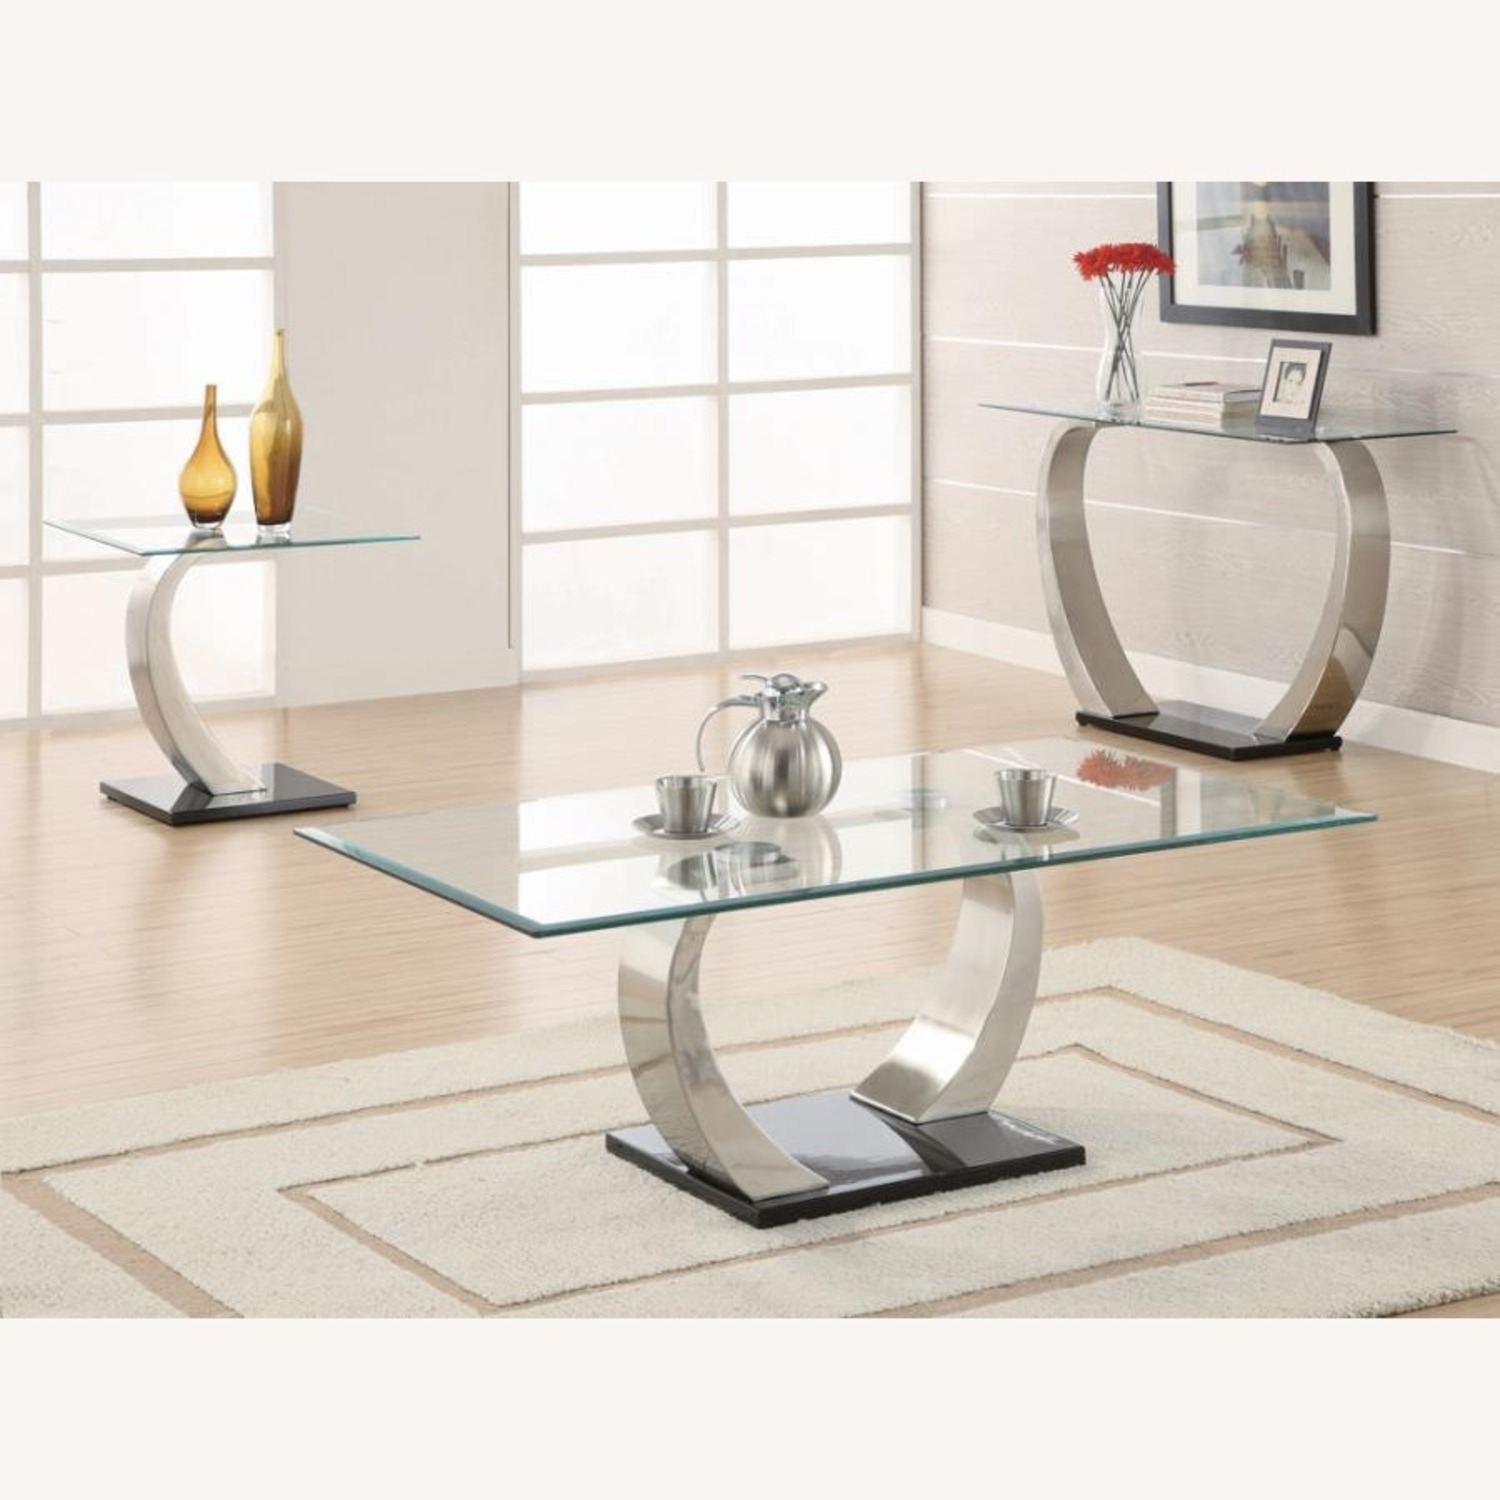 Sofa Table In Satin Finish W/ Glass Top - image-2